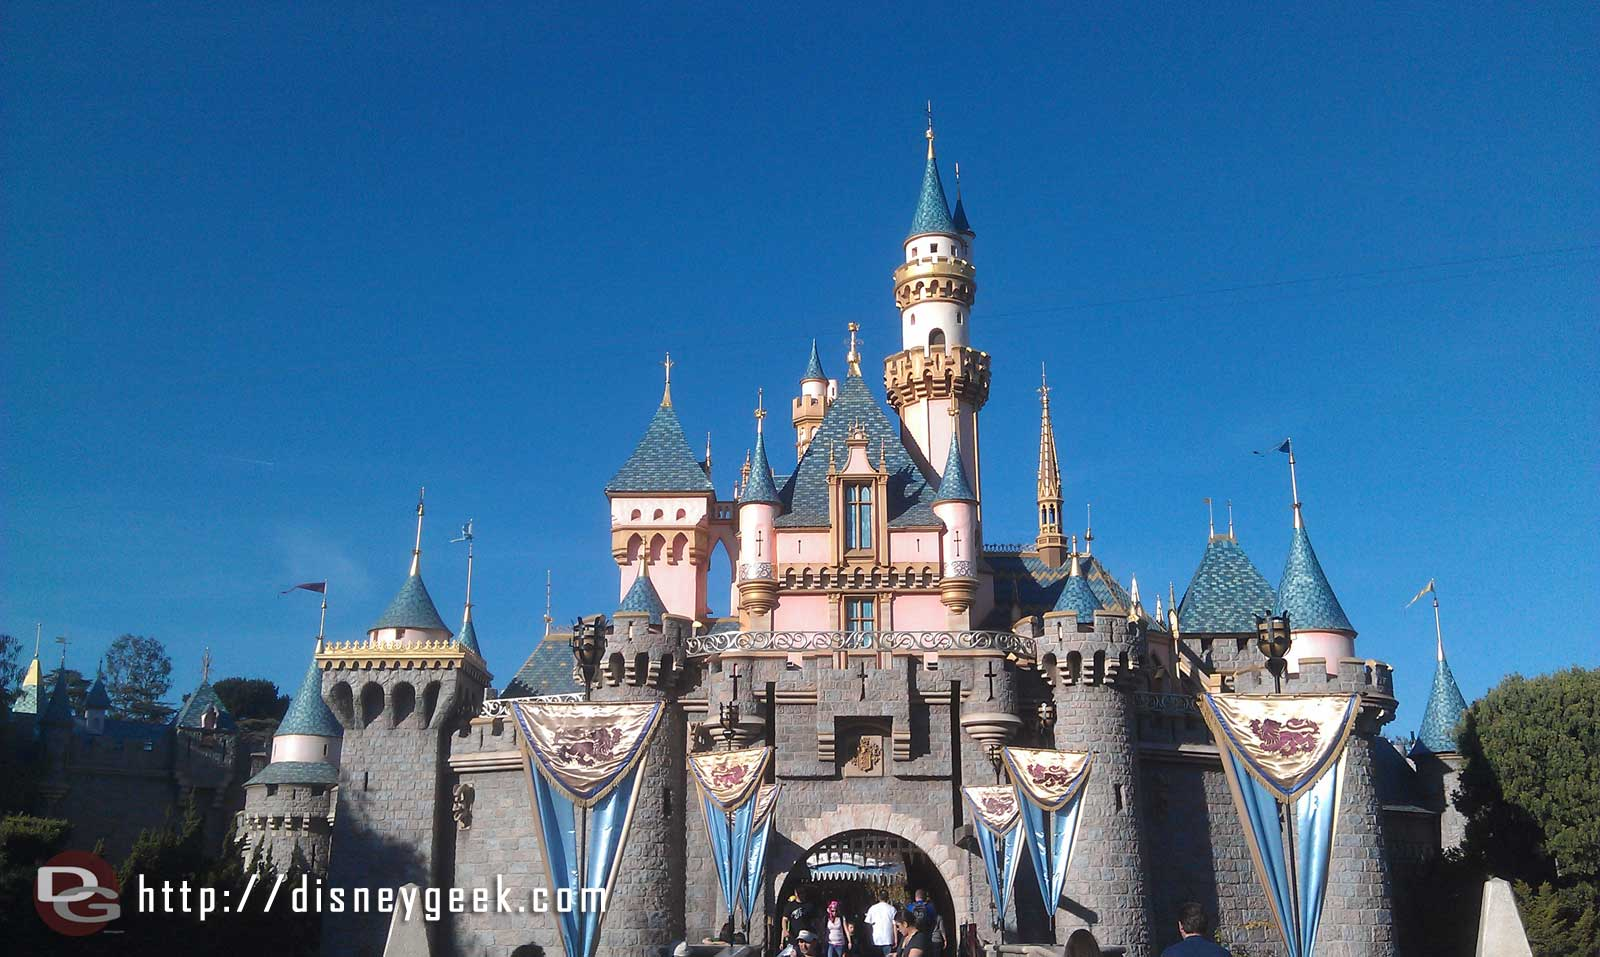 The snow on Sleeping Beauty Castle has melted away for another year